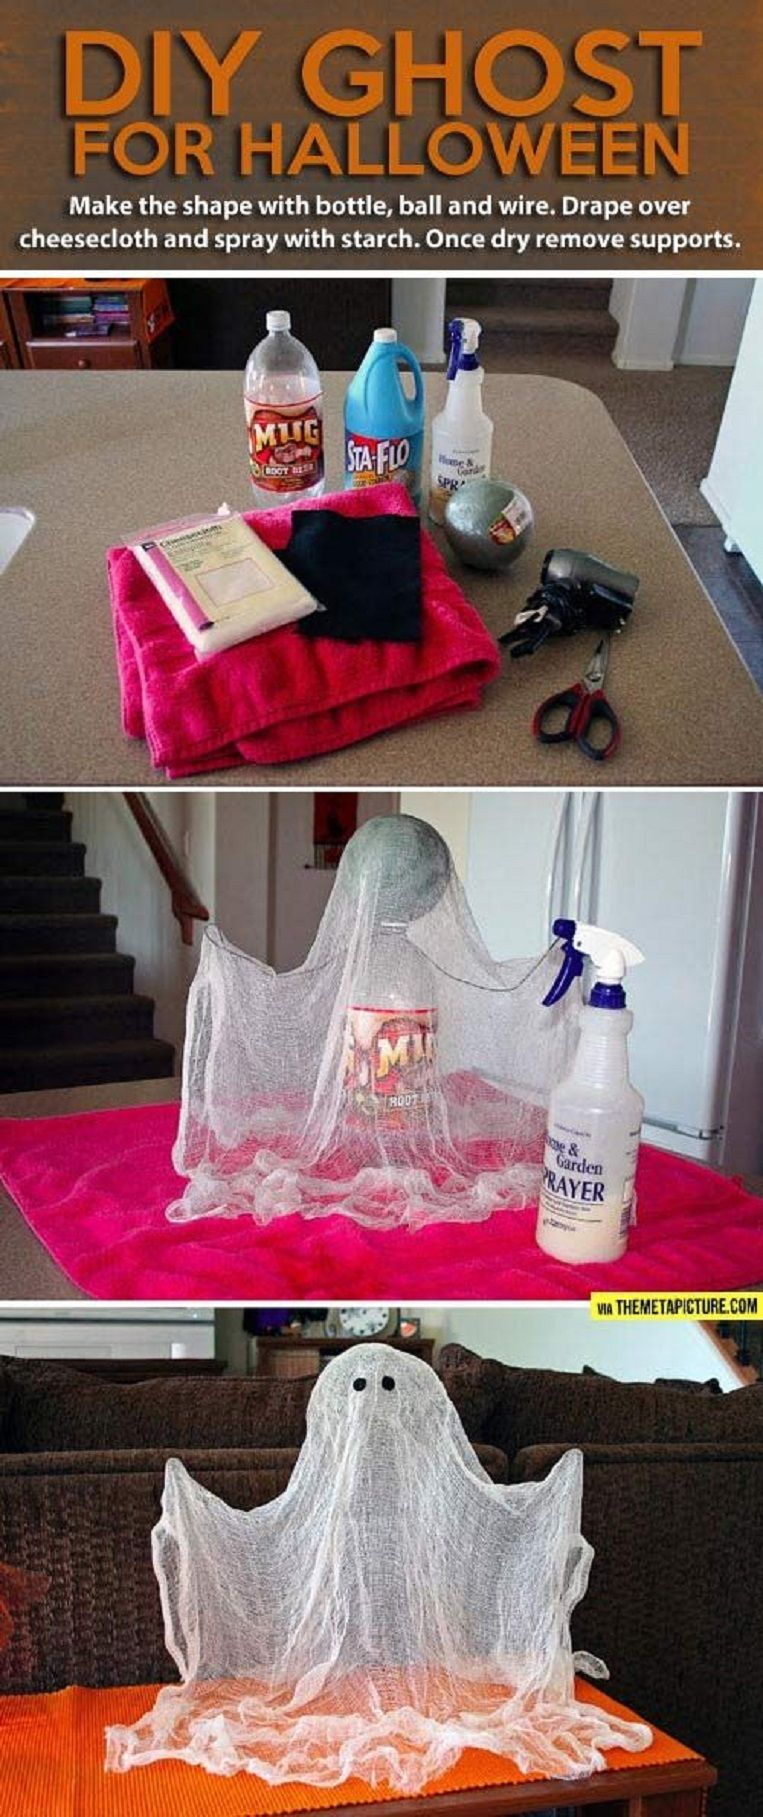 15 blood curdling diy halloween party decorations gleamitup - Diy Halloween Party Decorations